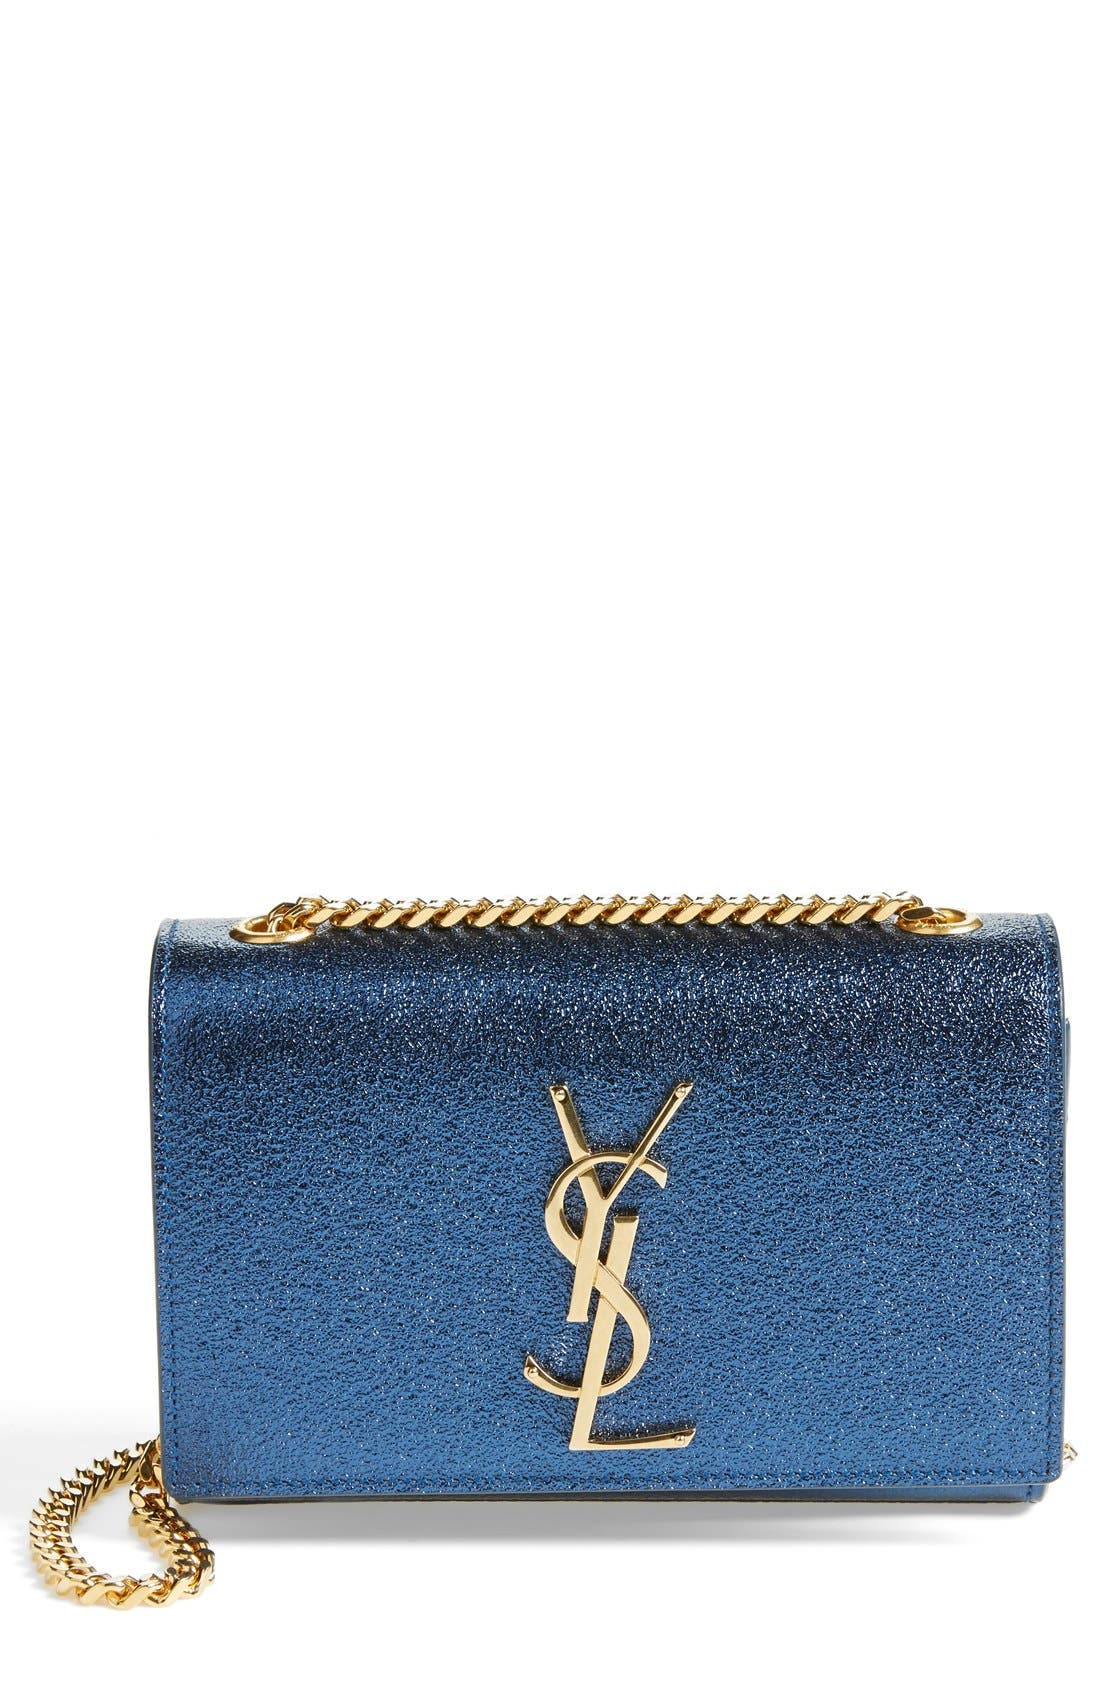 'Small Monogram' Crossbody Bag,                         Main,                         color, Bleu Metallise